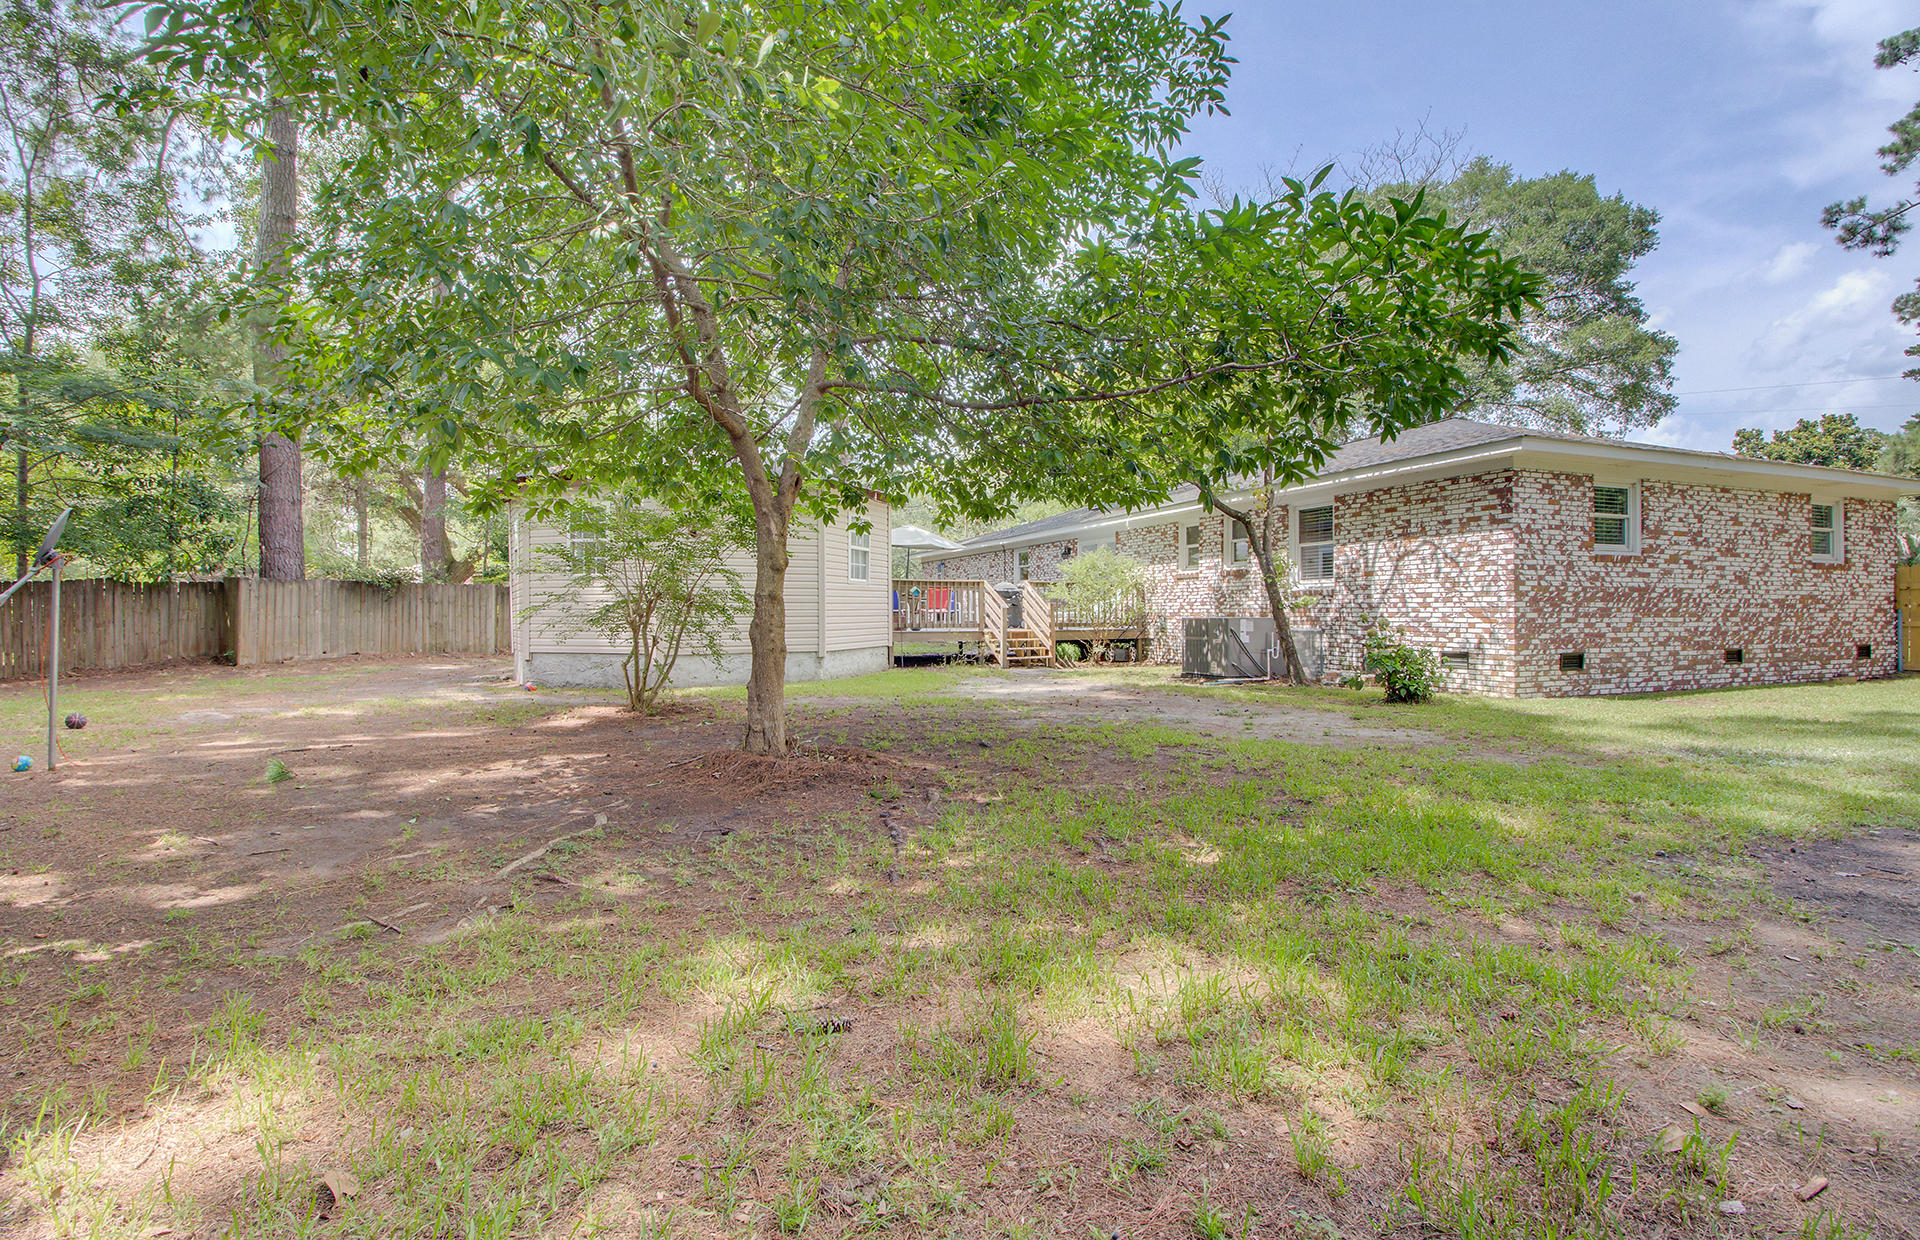 Photo of 110 County Rd S-18-334, Ladson, SC 29456